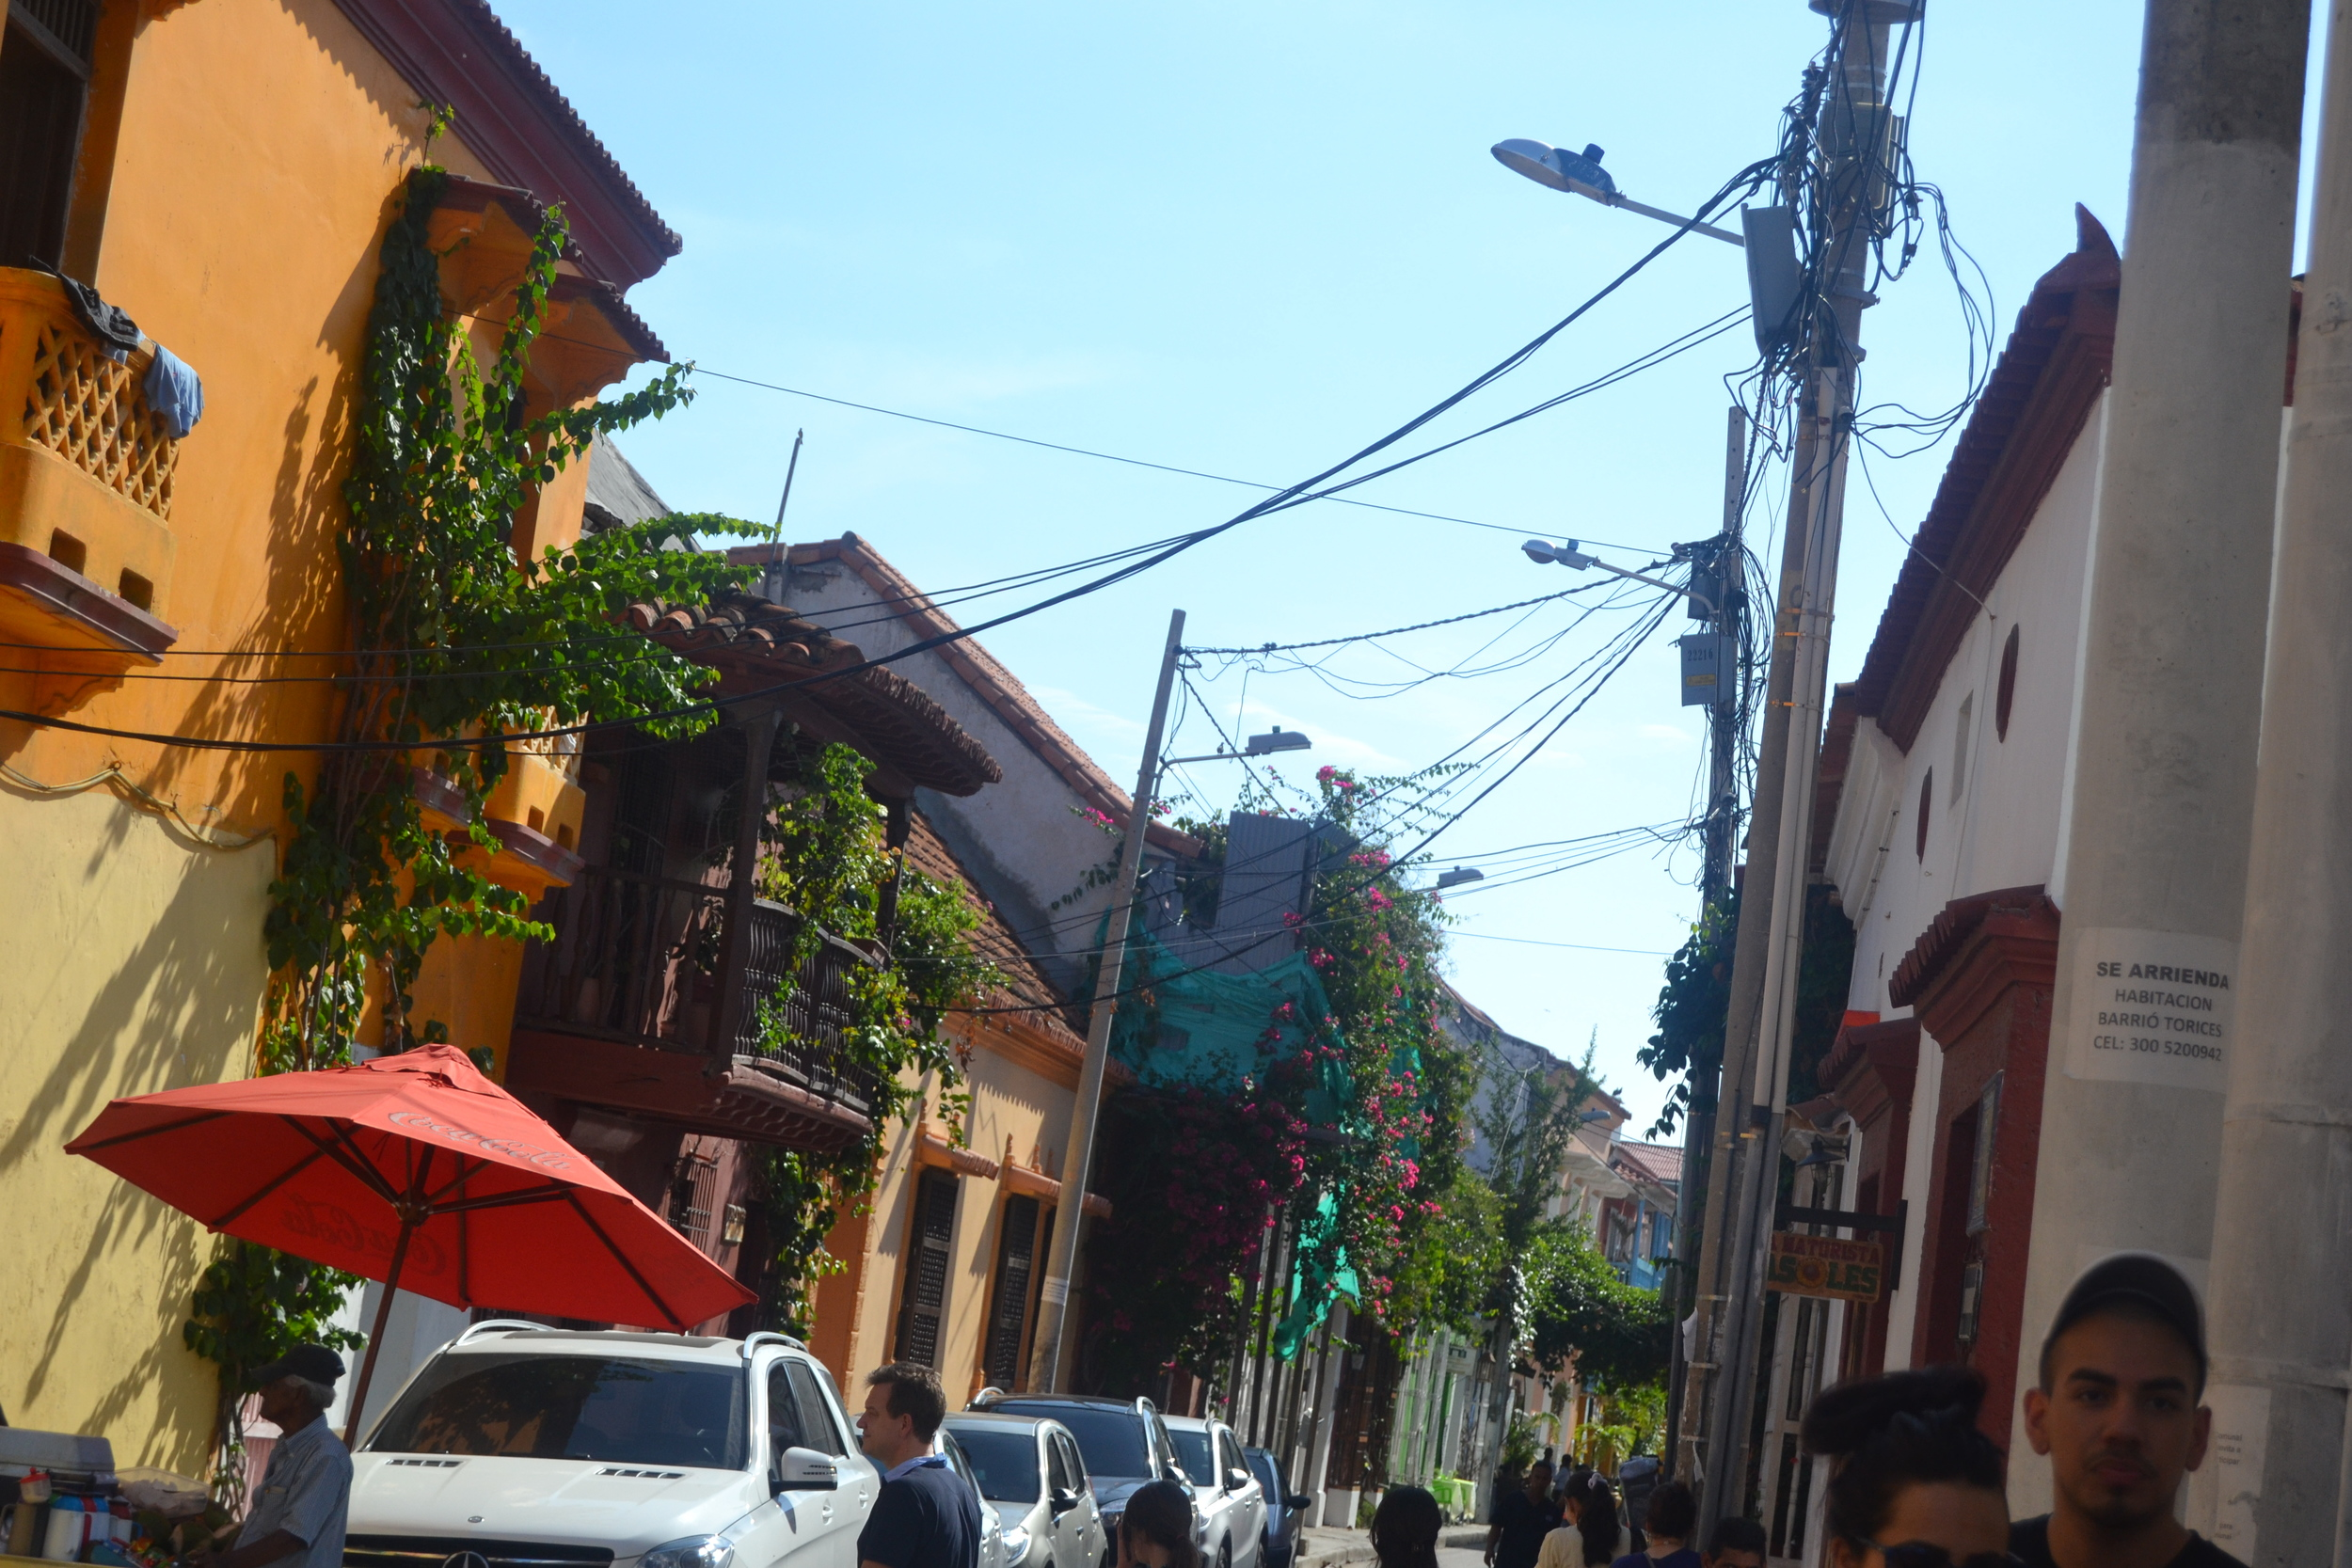 The streets of the Walled City!